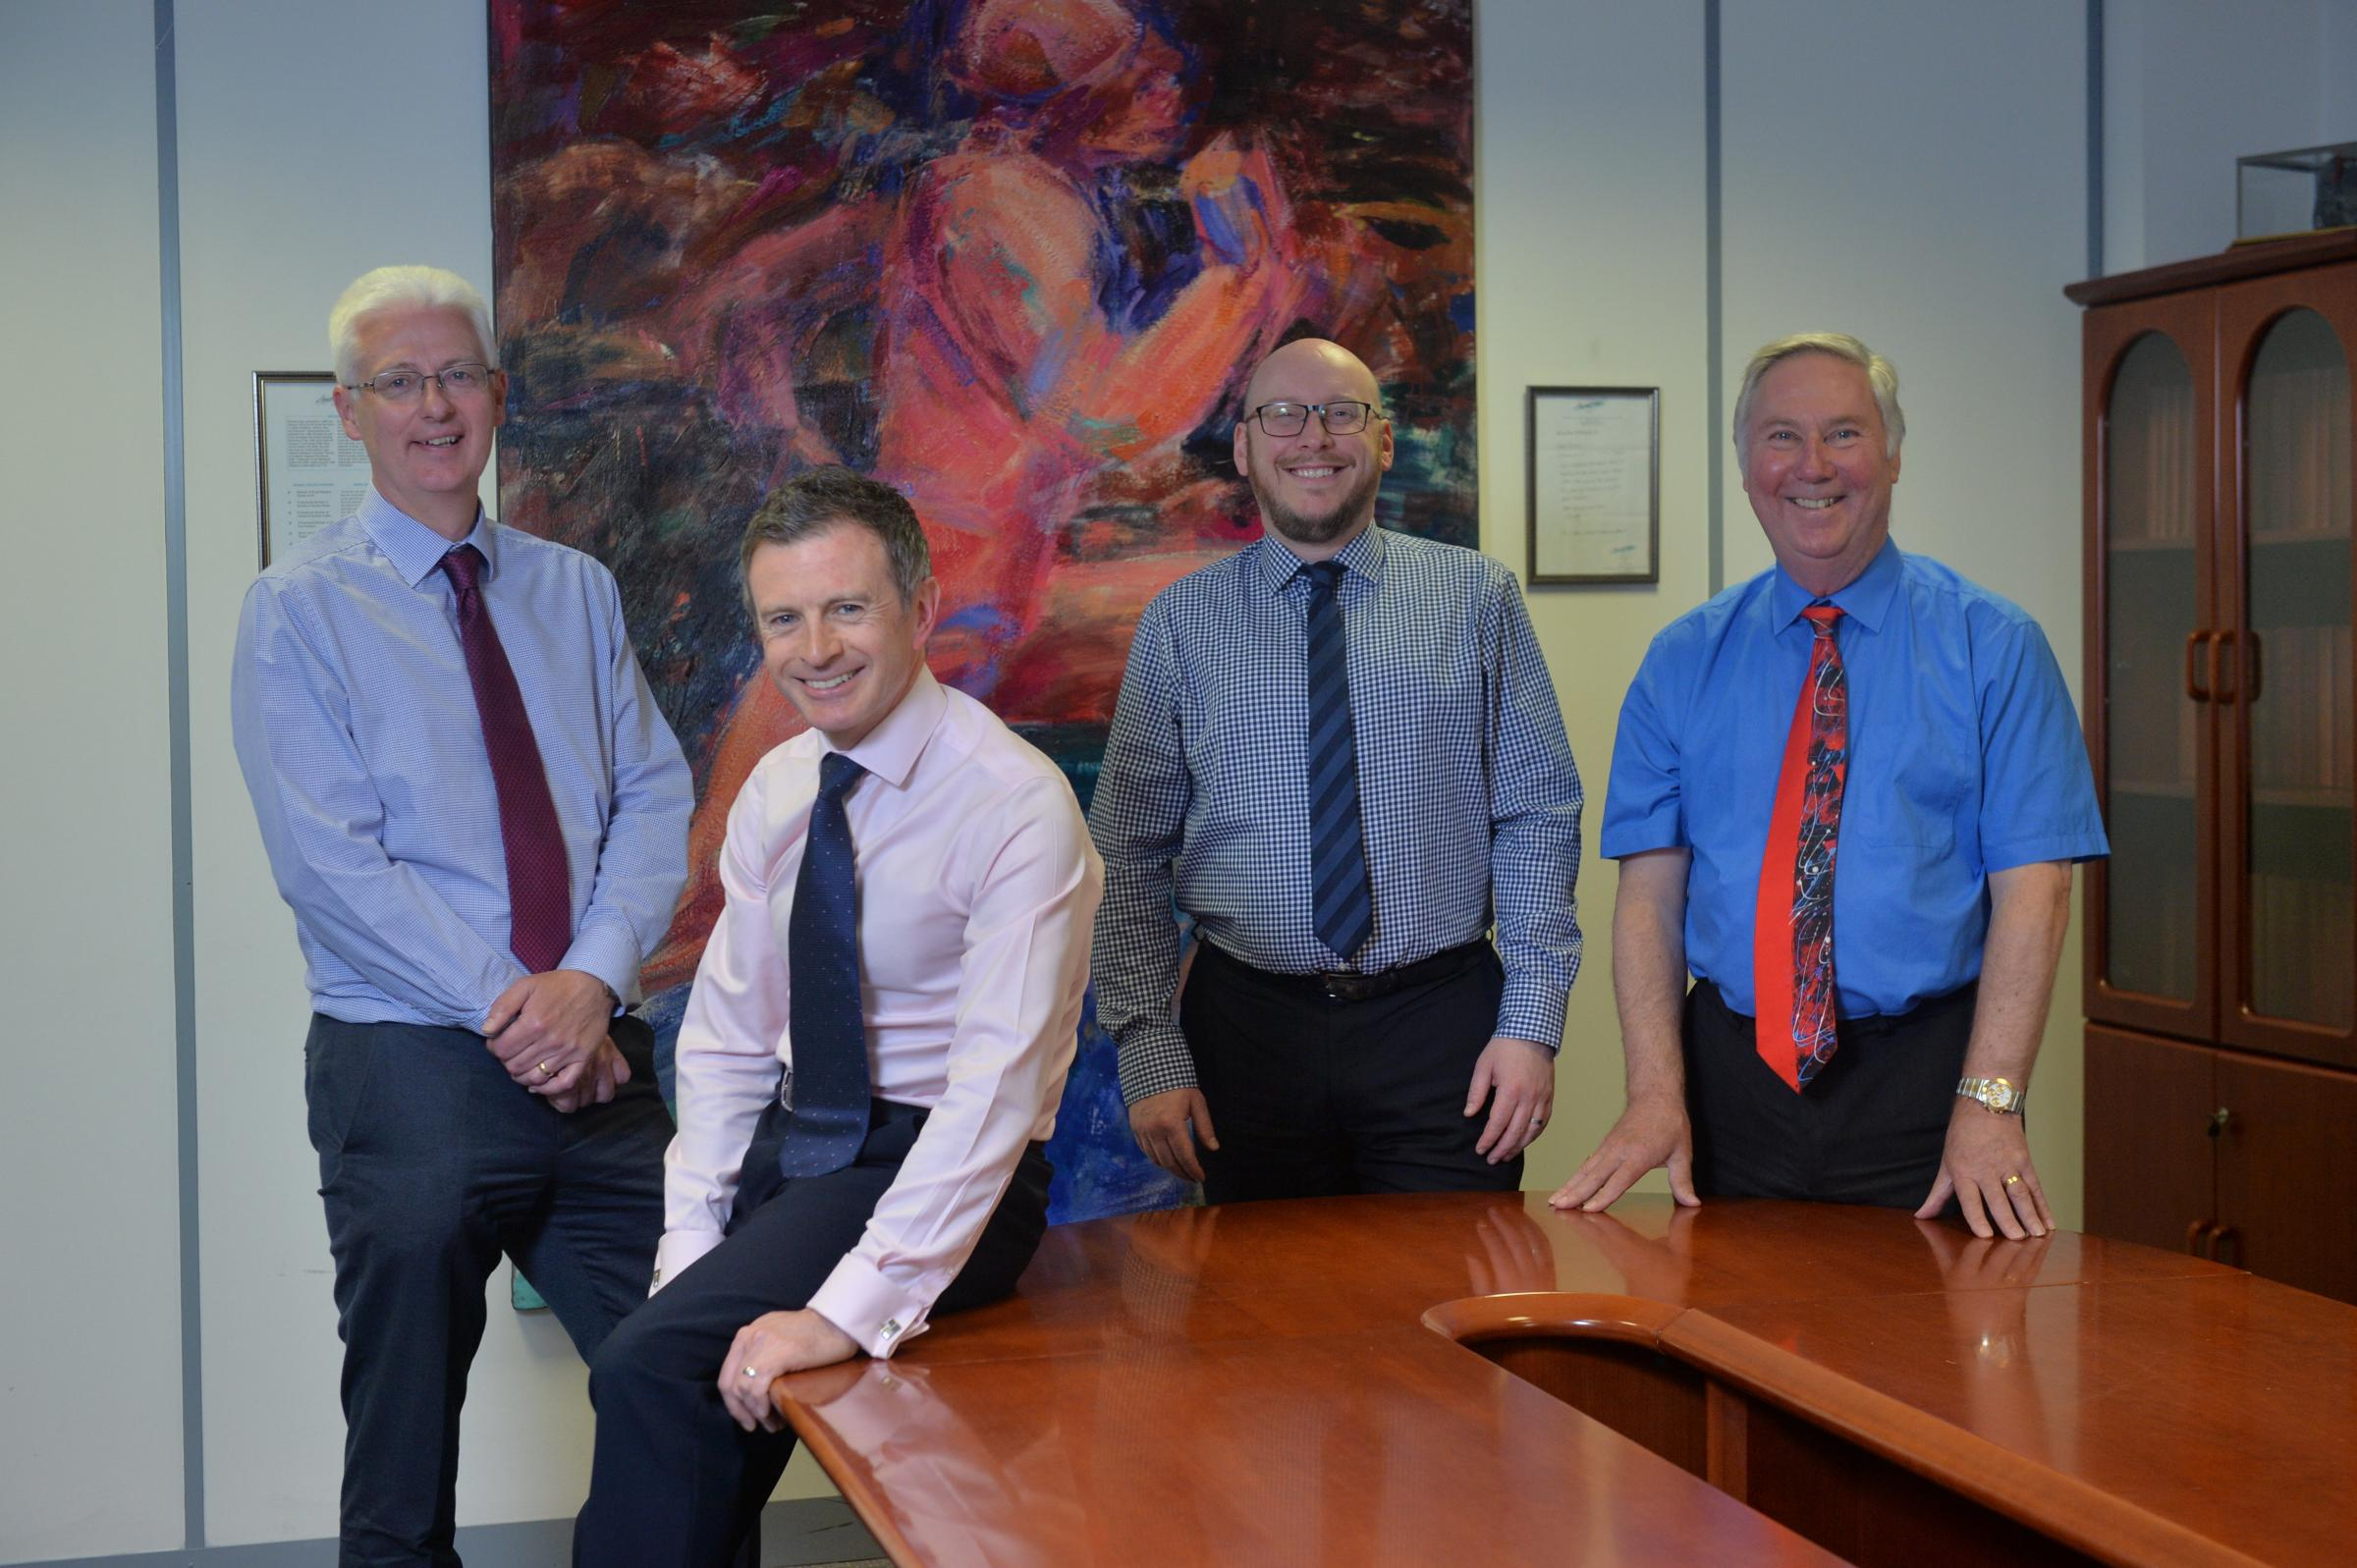 Glasgow law firm Dallas McMillan is run by partners (from left) Gordon Bell, Terence Doherty, David McElroy and senior partner Forbes Leslie.